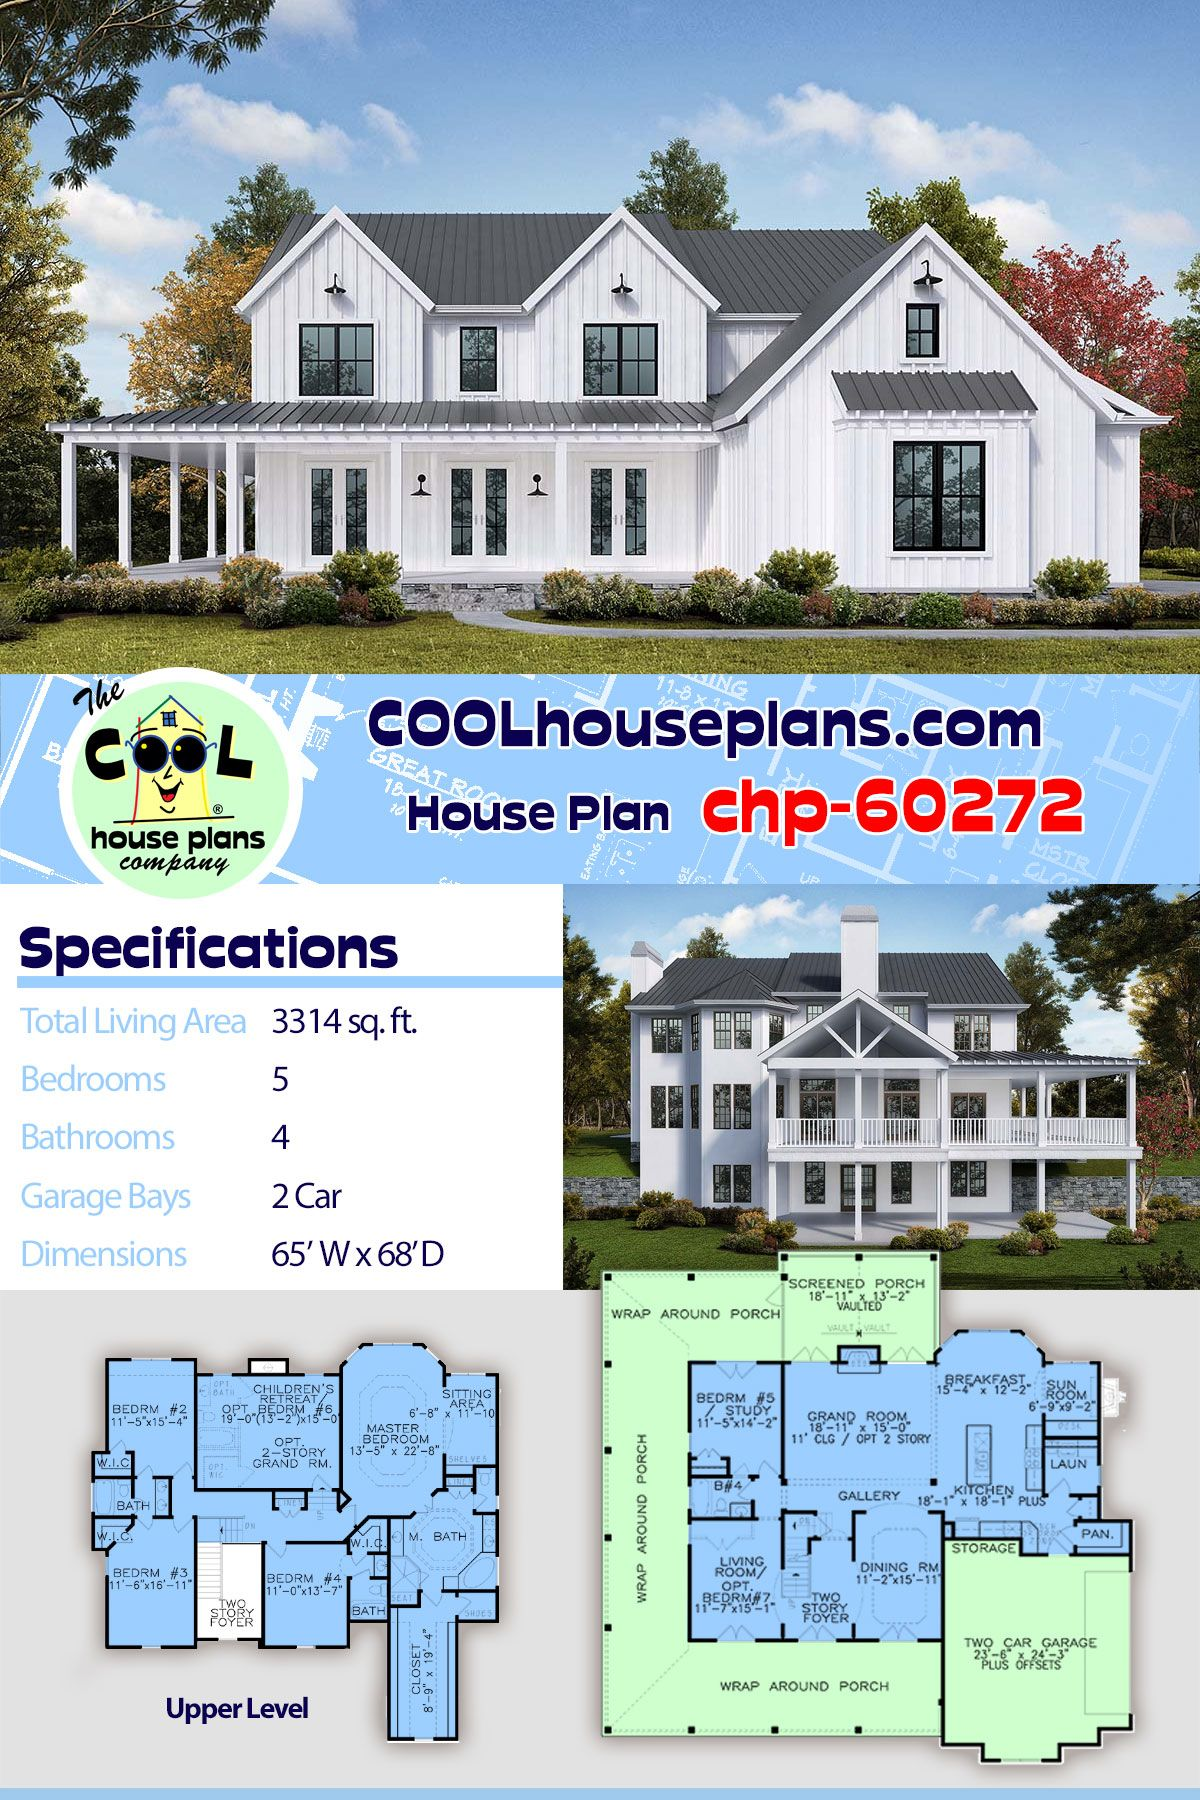 Beautiful Southern Farmhouse Plan Chp 60272 With Five Beds Four Full Baths And A Walk Out Basement In 2020 Farmhouse Style House Plans Farmhouse Plans House Plans